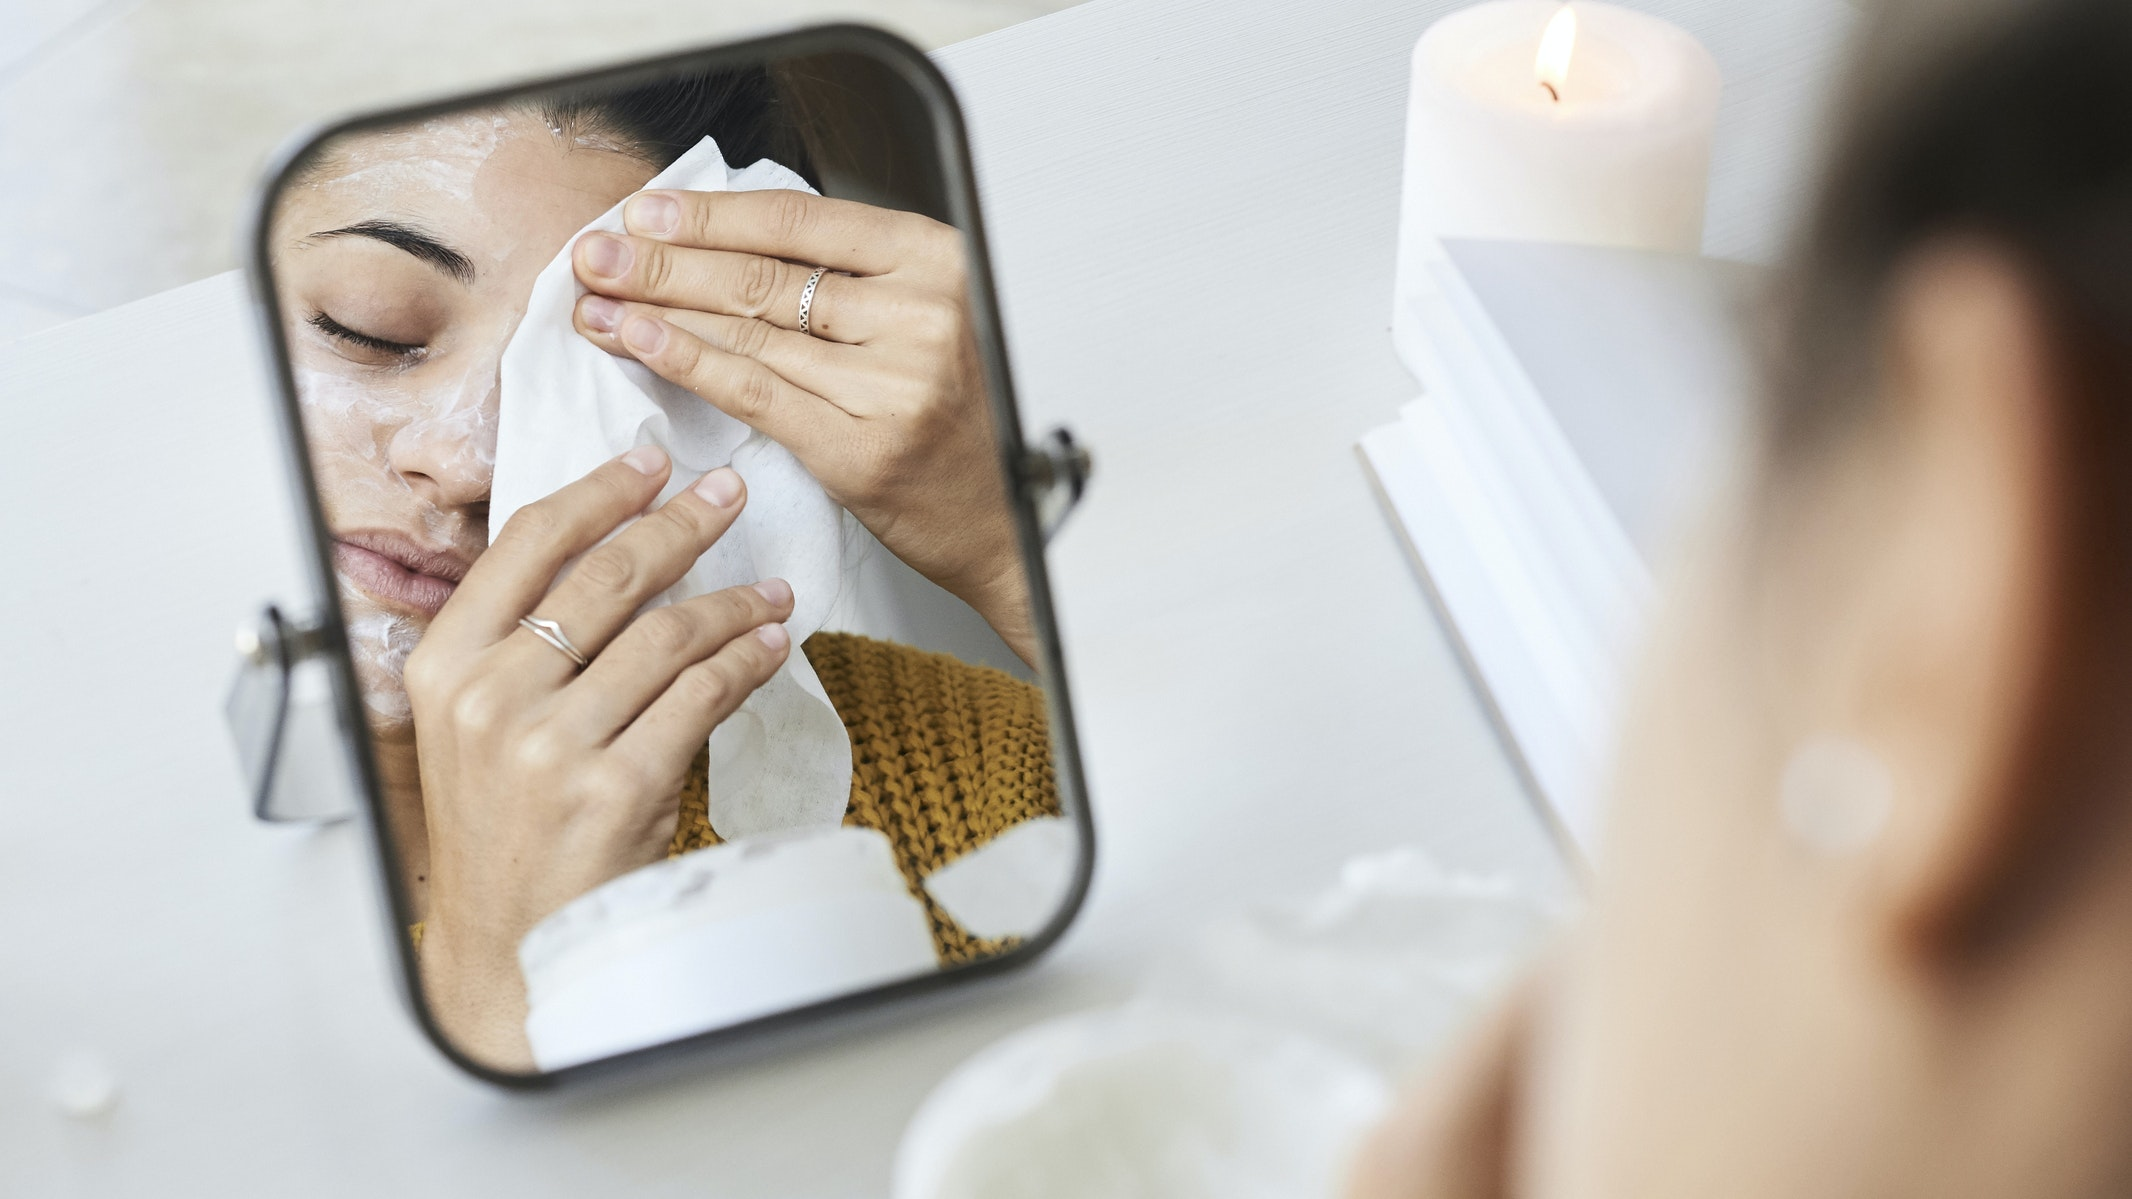 woman removing makeup with wipe